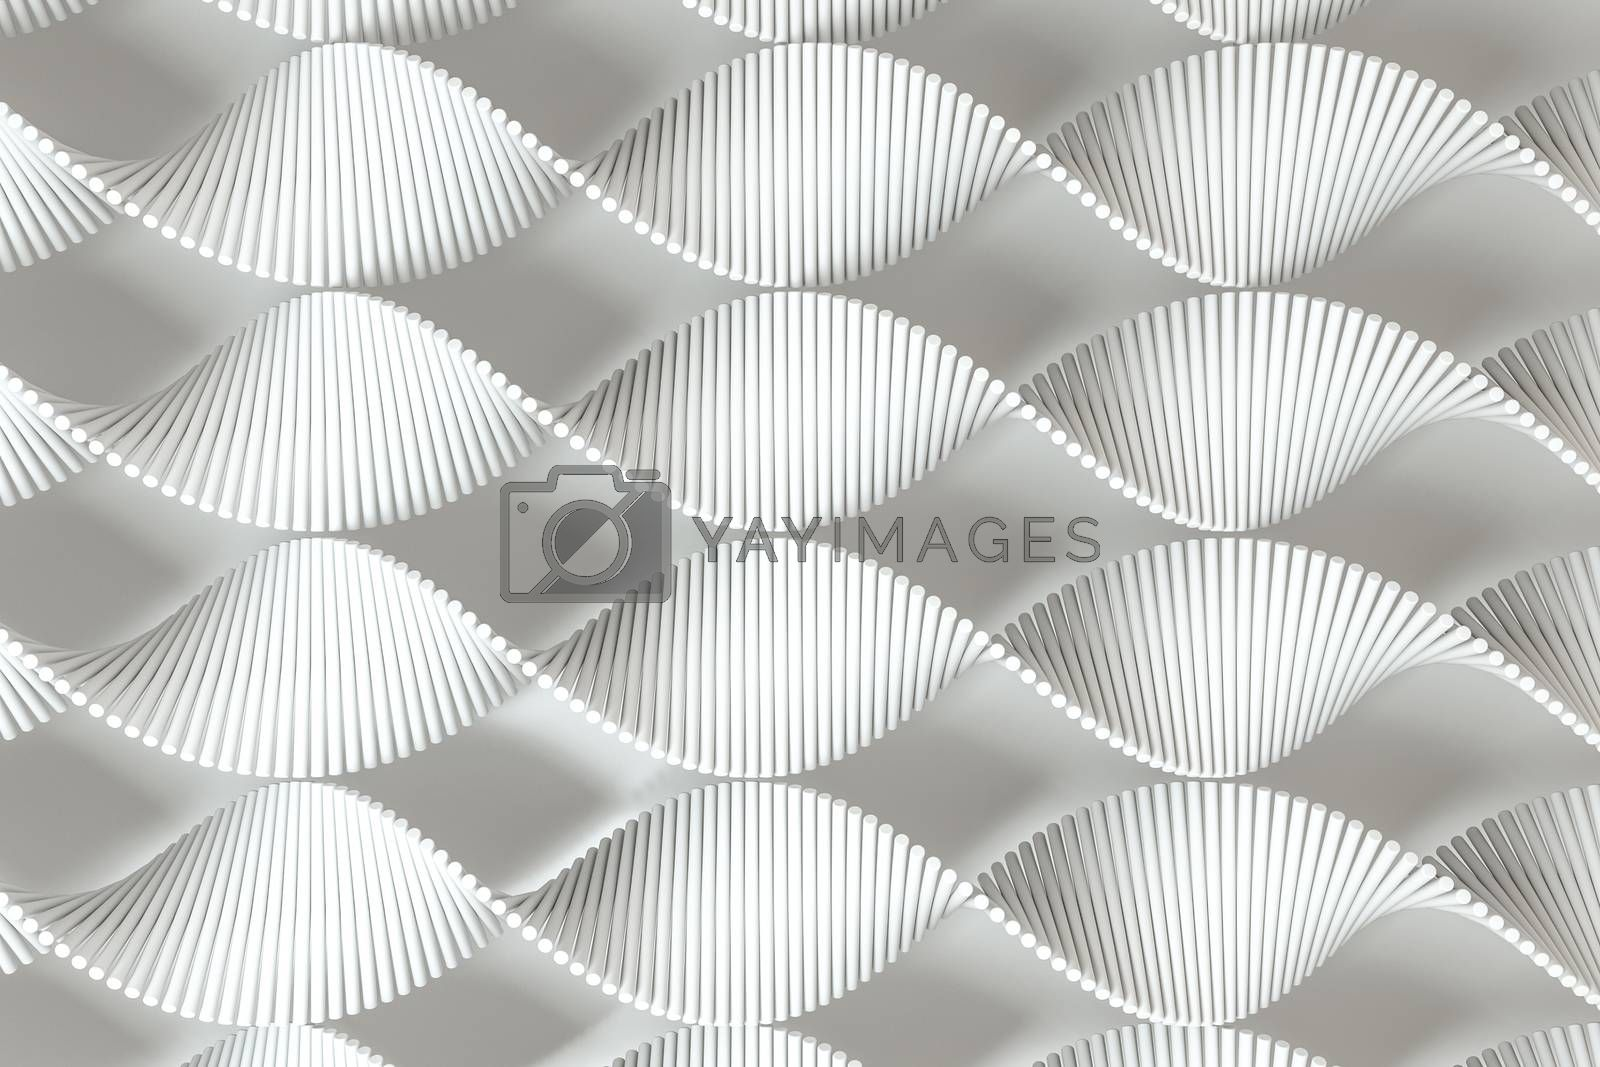 3d rendering, the spiral DNA consist of lines. by vinkfan